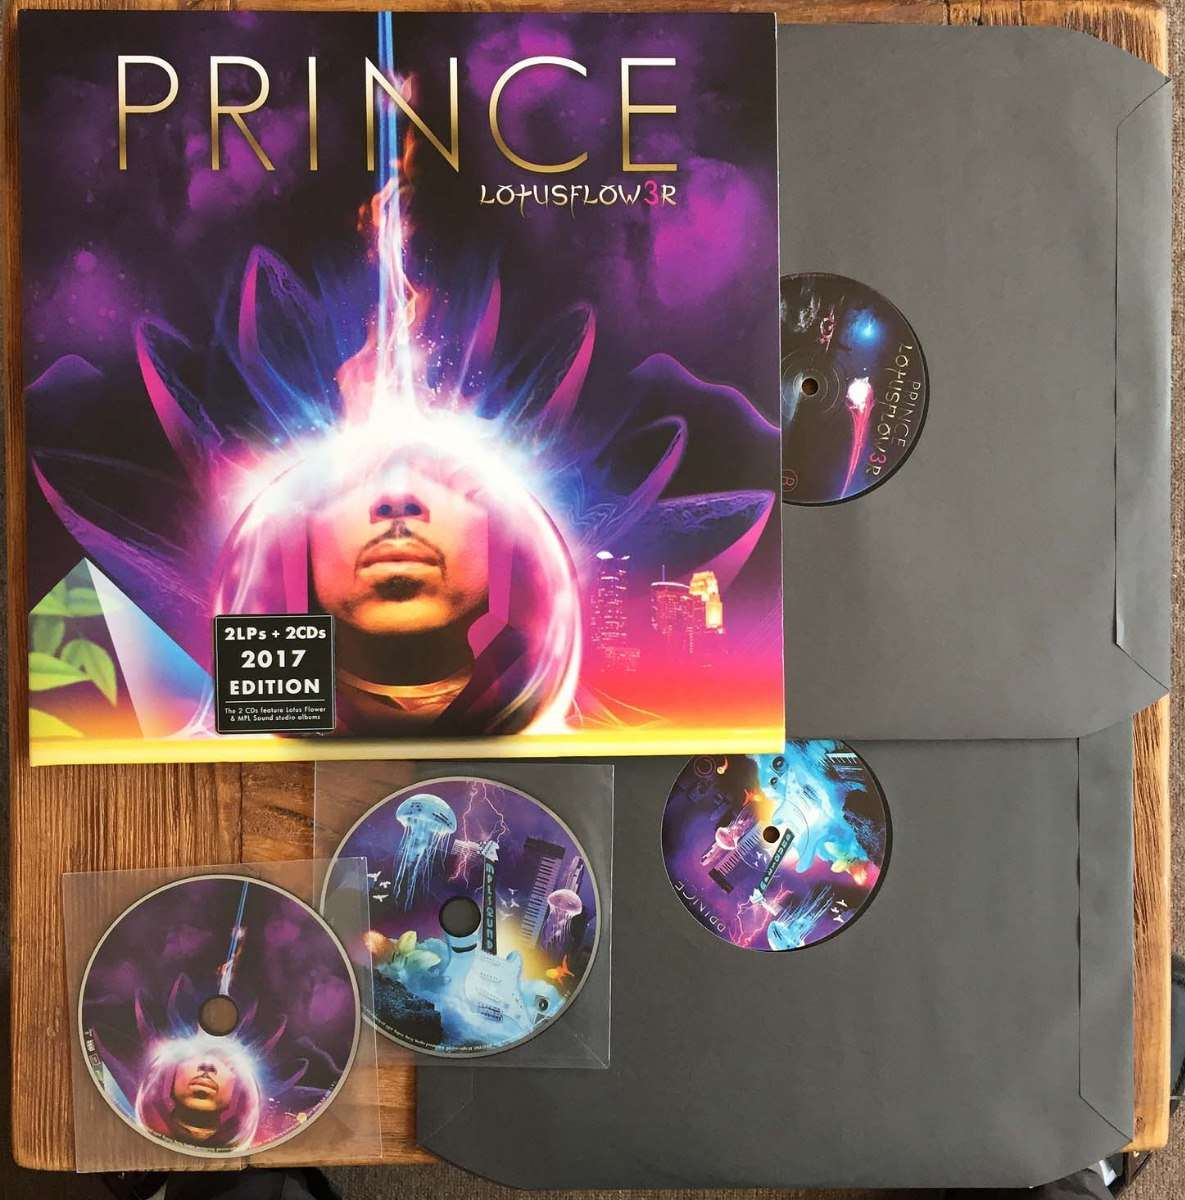 Prince Lotusflower Mplsound 2 Lps Y 2 Cds 2017 Europa 82400